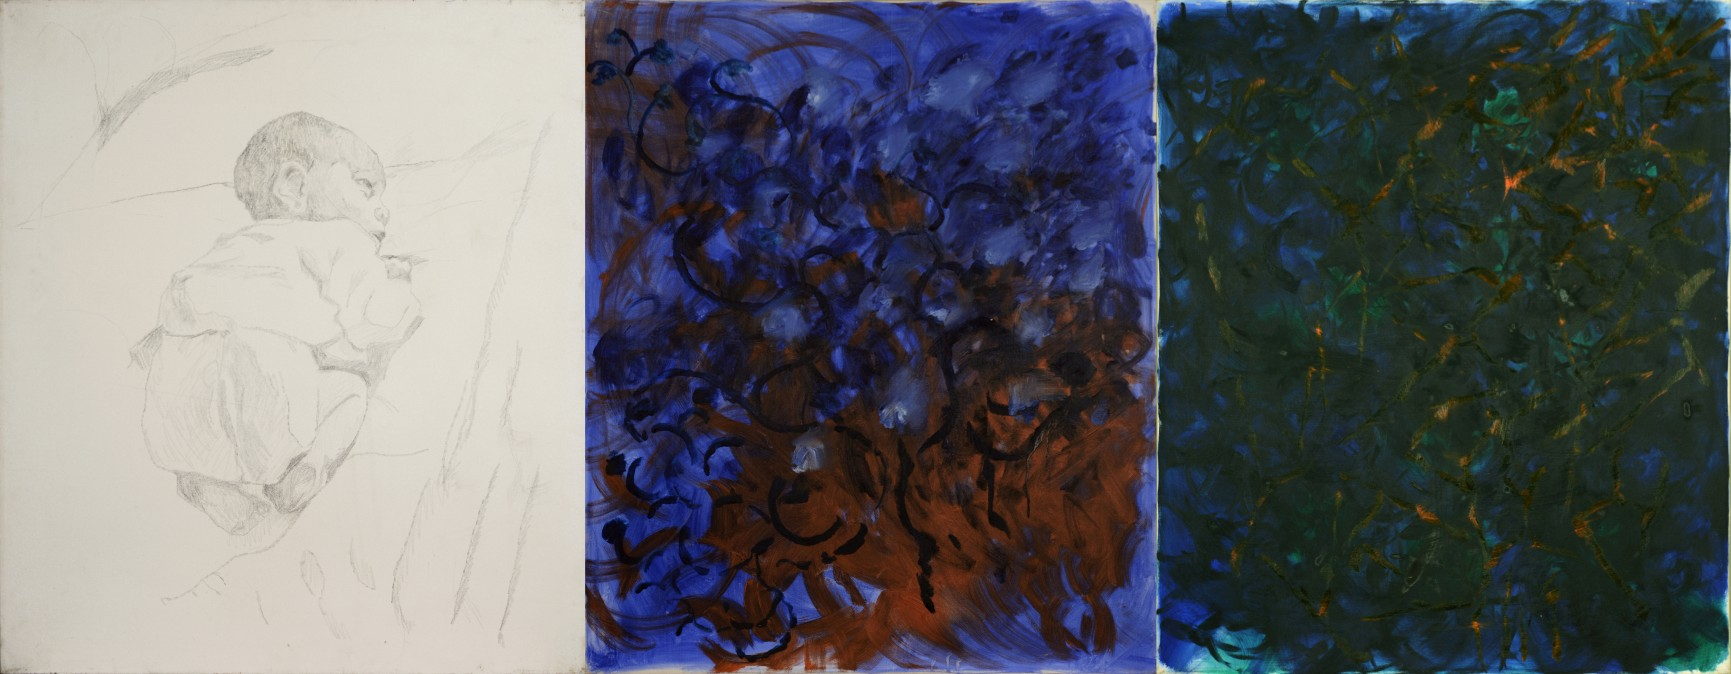 Ido at 7 Days, oil and pencil on paper, 1989, 85/100 cm, 85/100 cm, 85/100 cm